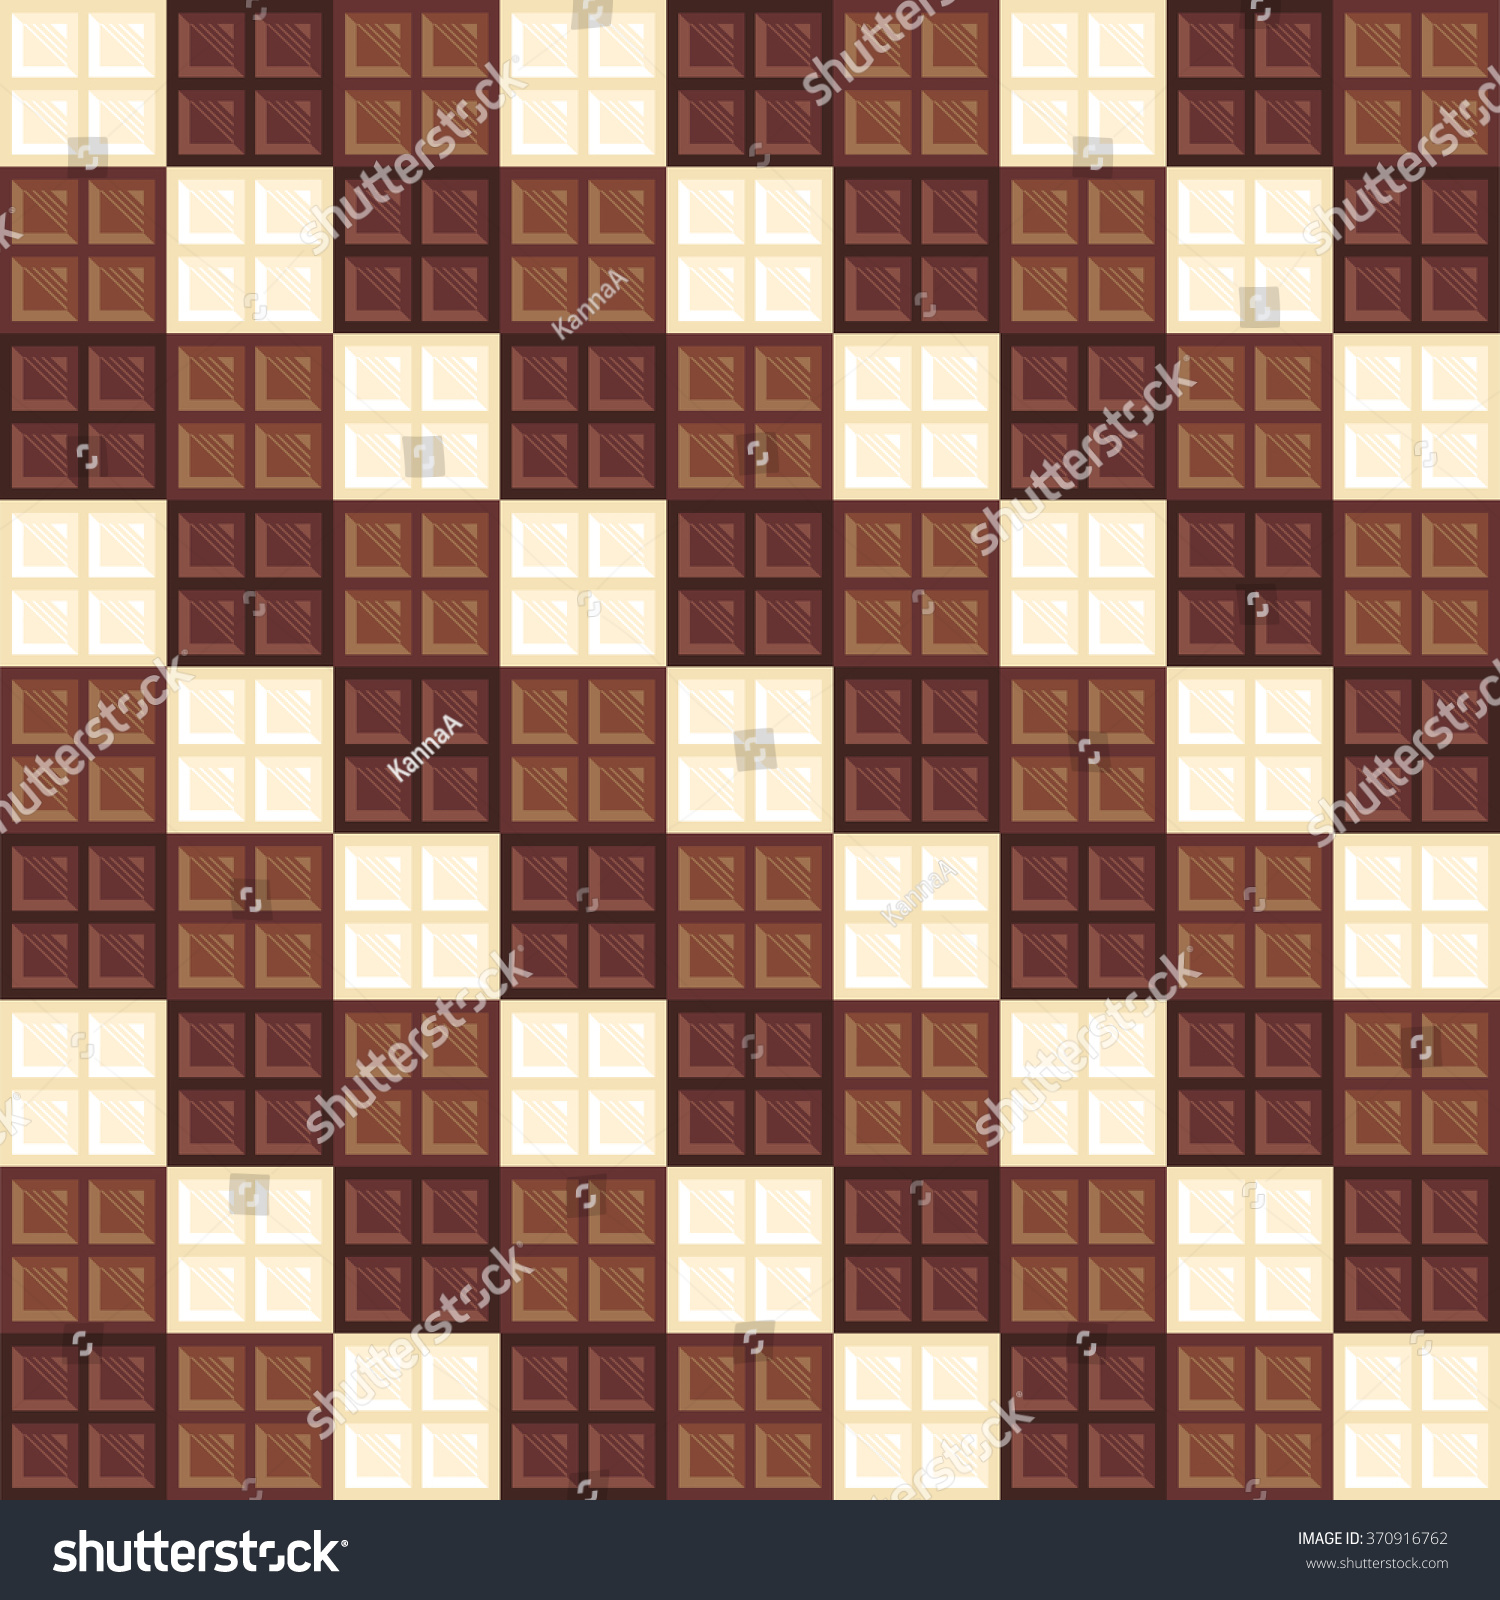 Chocolate Bars Seamless Pattern Different Types Stock Vector ...